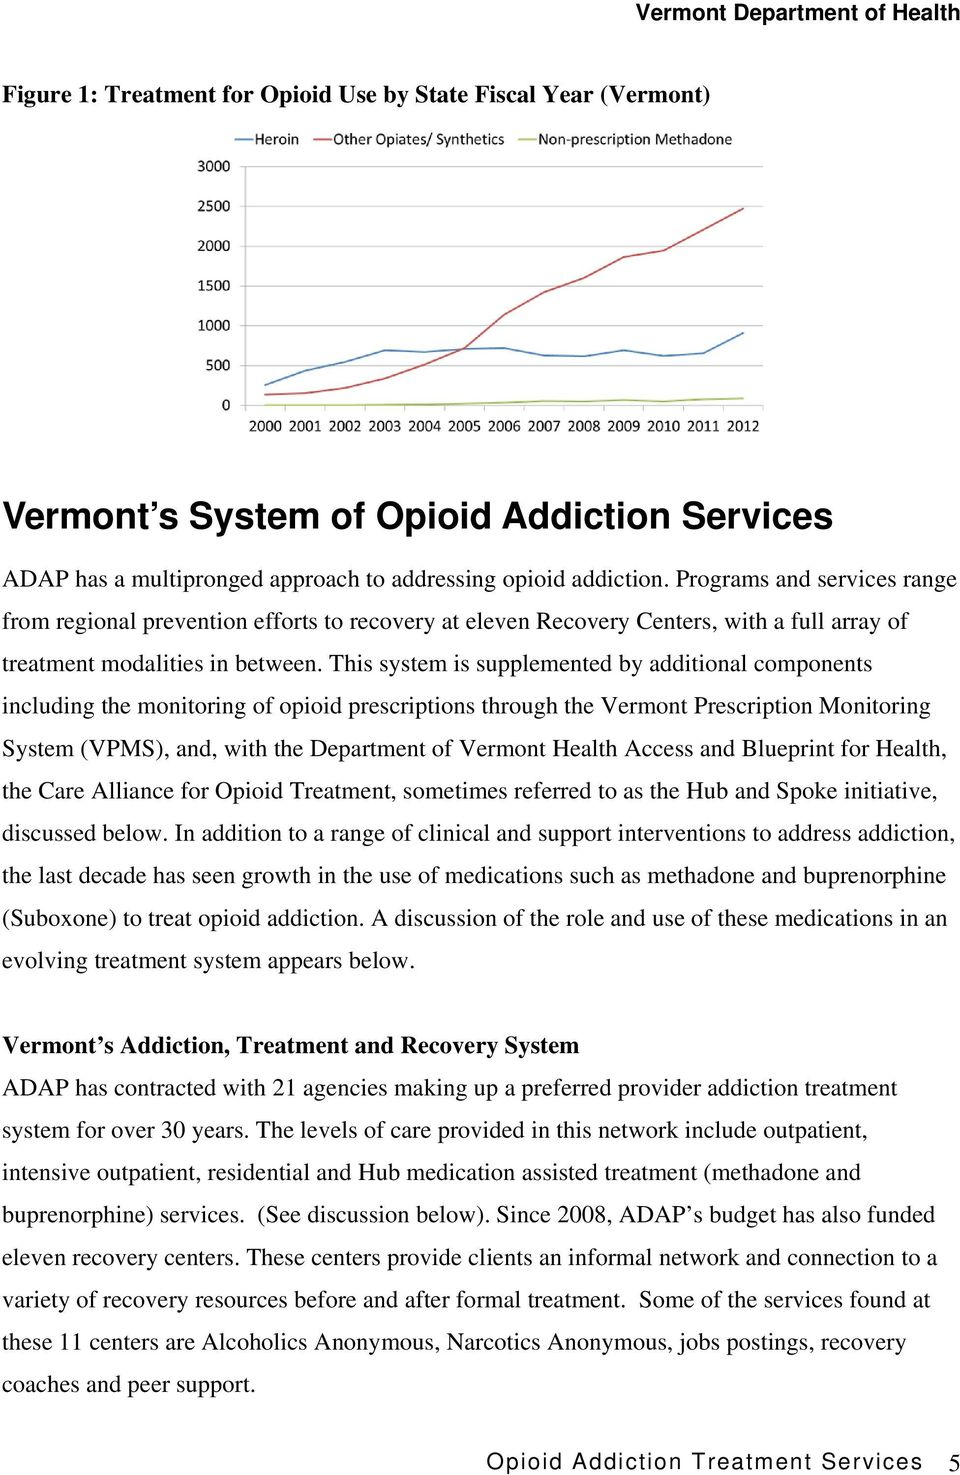 This system is supplemented by additional components including the monitoring of opioid prescriptions through the Vermont Prescription Monitoring System (VPMS), and, with the Department of Vermont